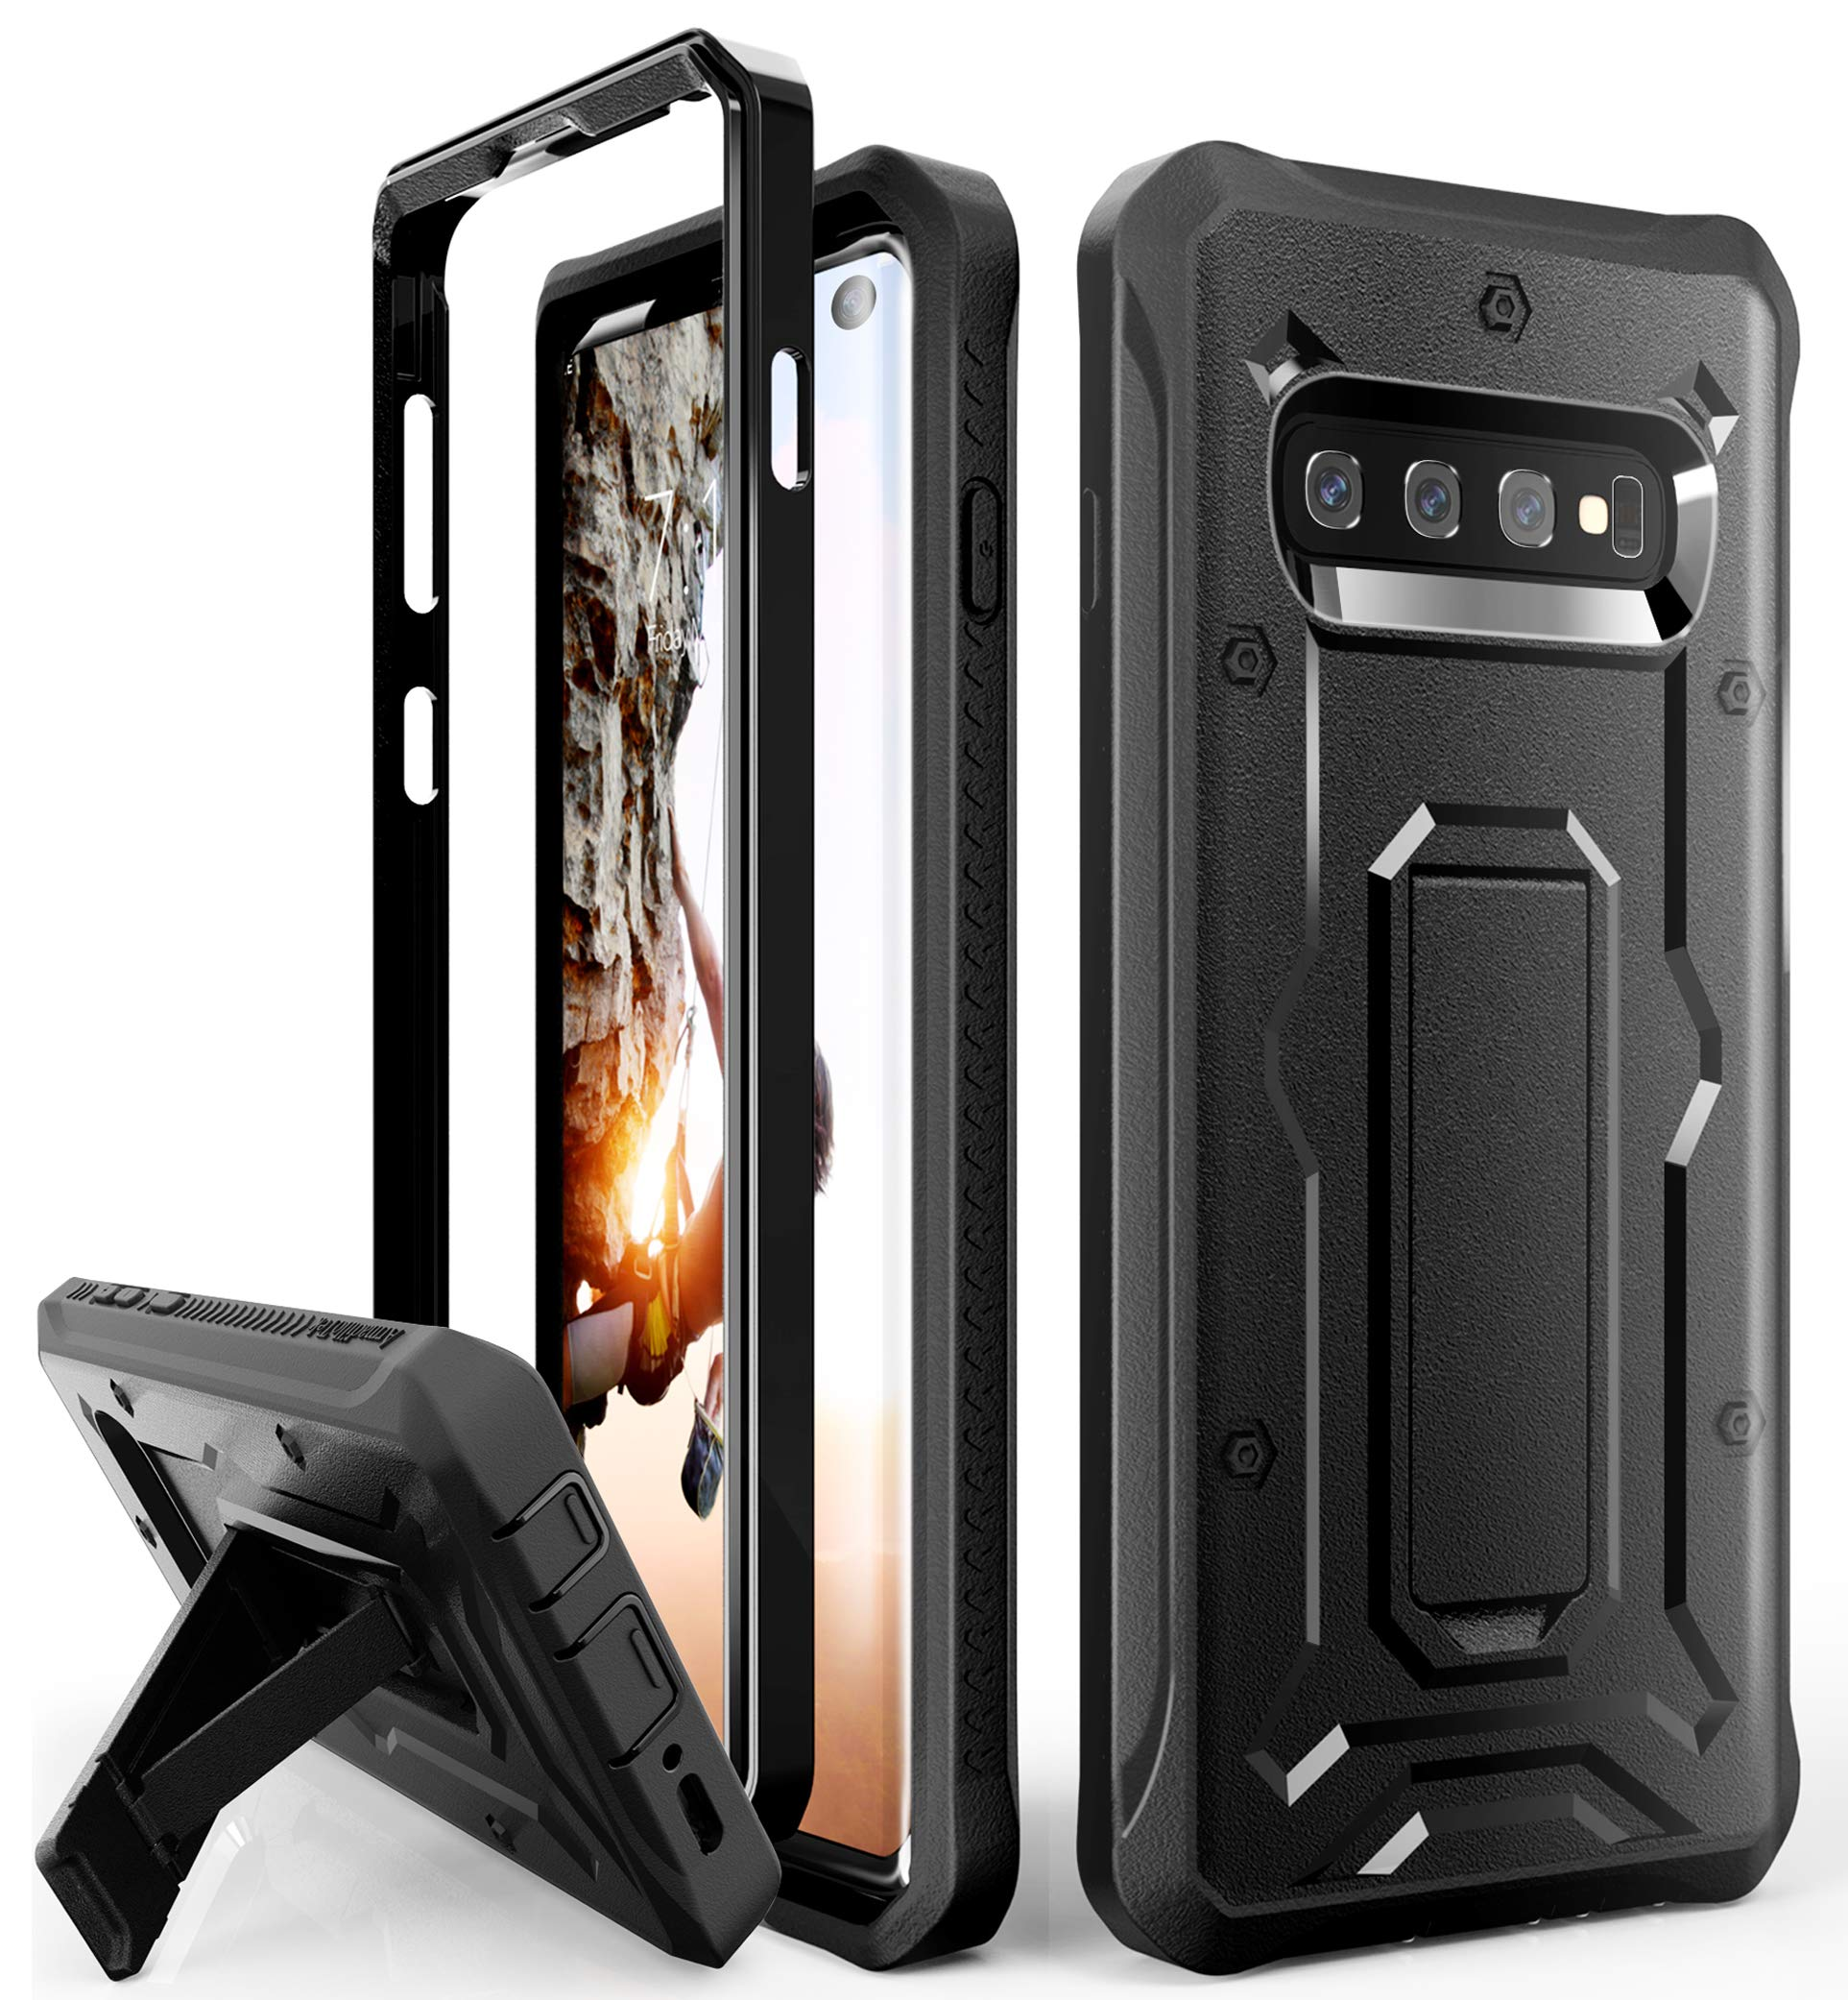 ArmadilloTek Vanguard Designed for Samsung Galaxy S10 Case (2019 Release) Military Grade Full-Body Rugged with Kickstand Without Built-in Screen Protector (Black) by ArmadilloTek